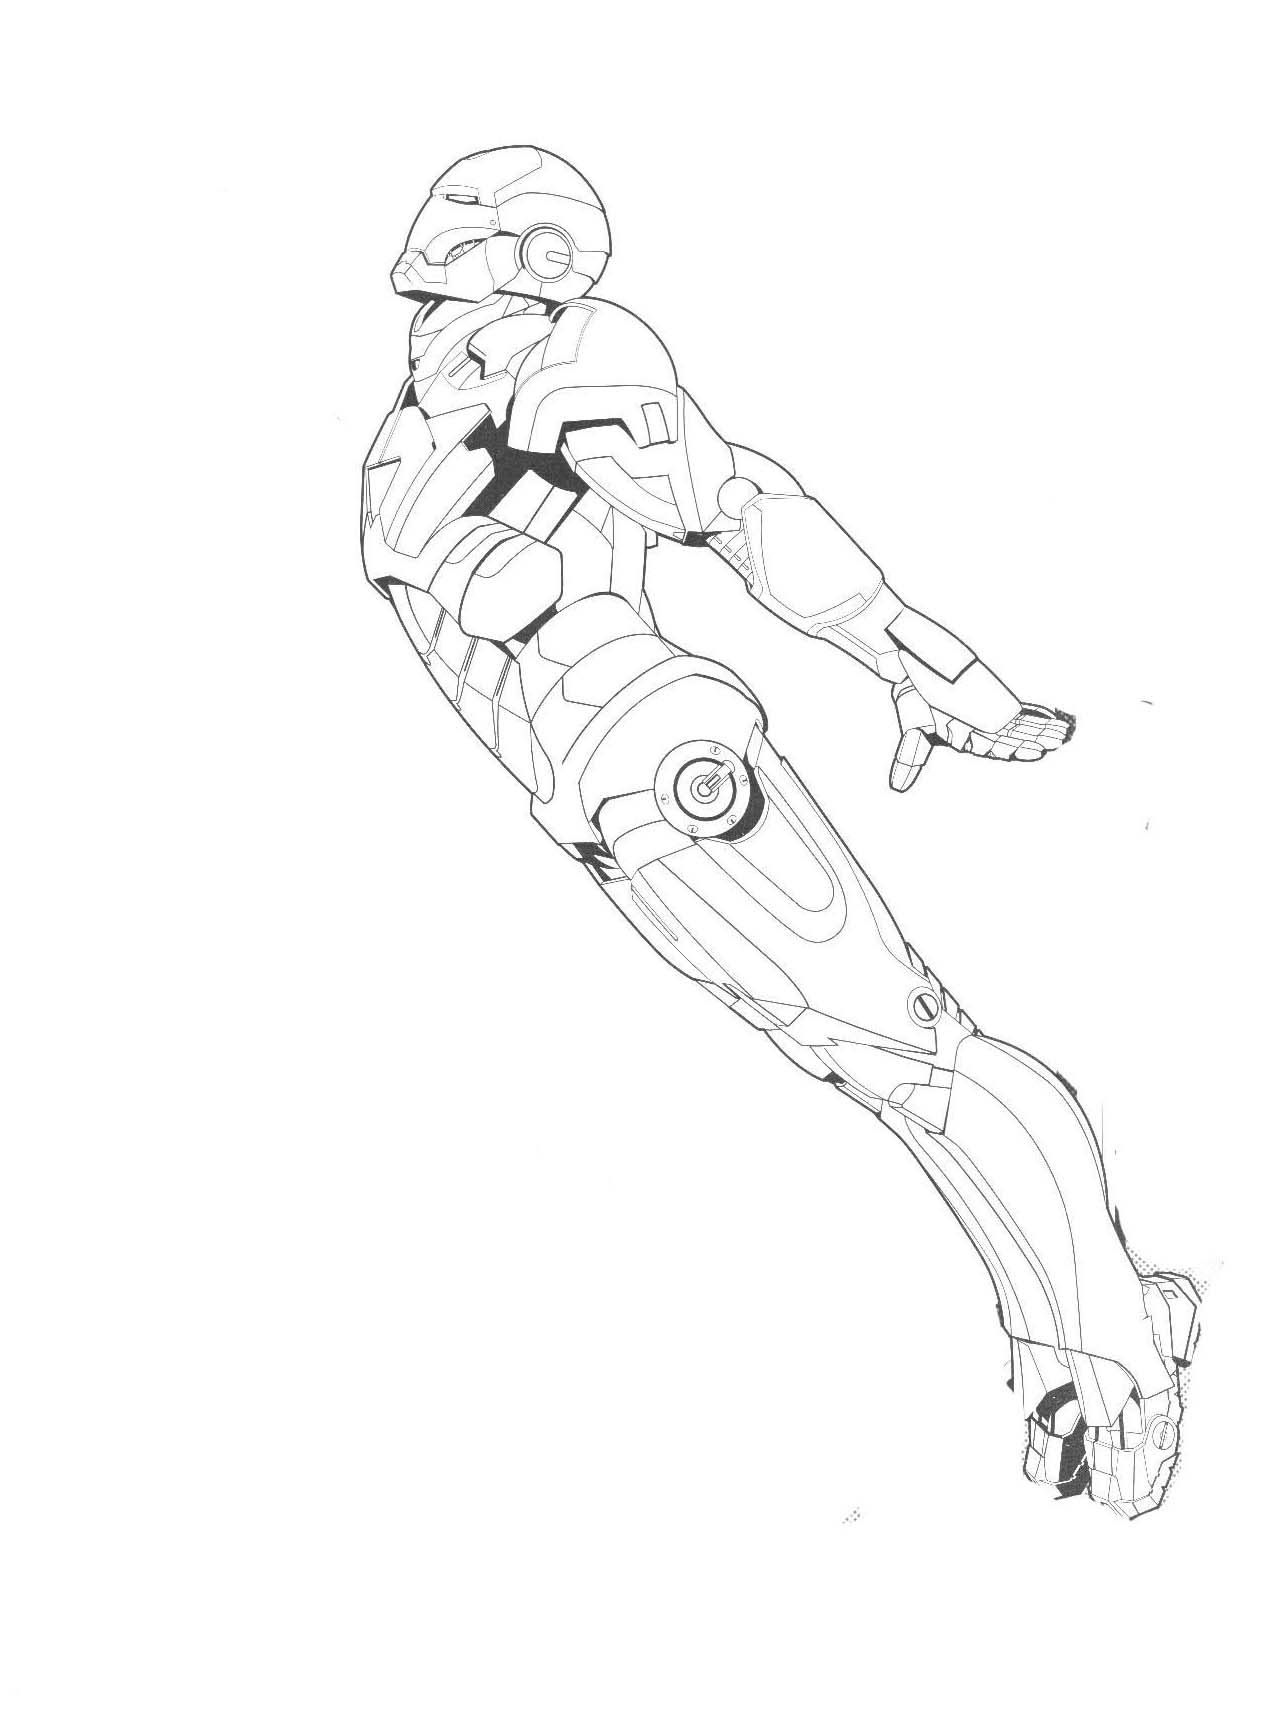 I have download Iron Man Like To Fly To Distant Coloring ...